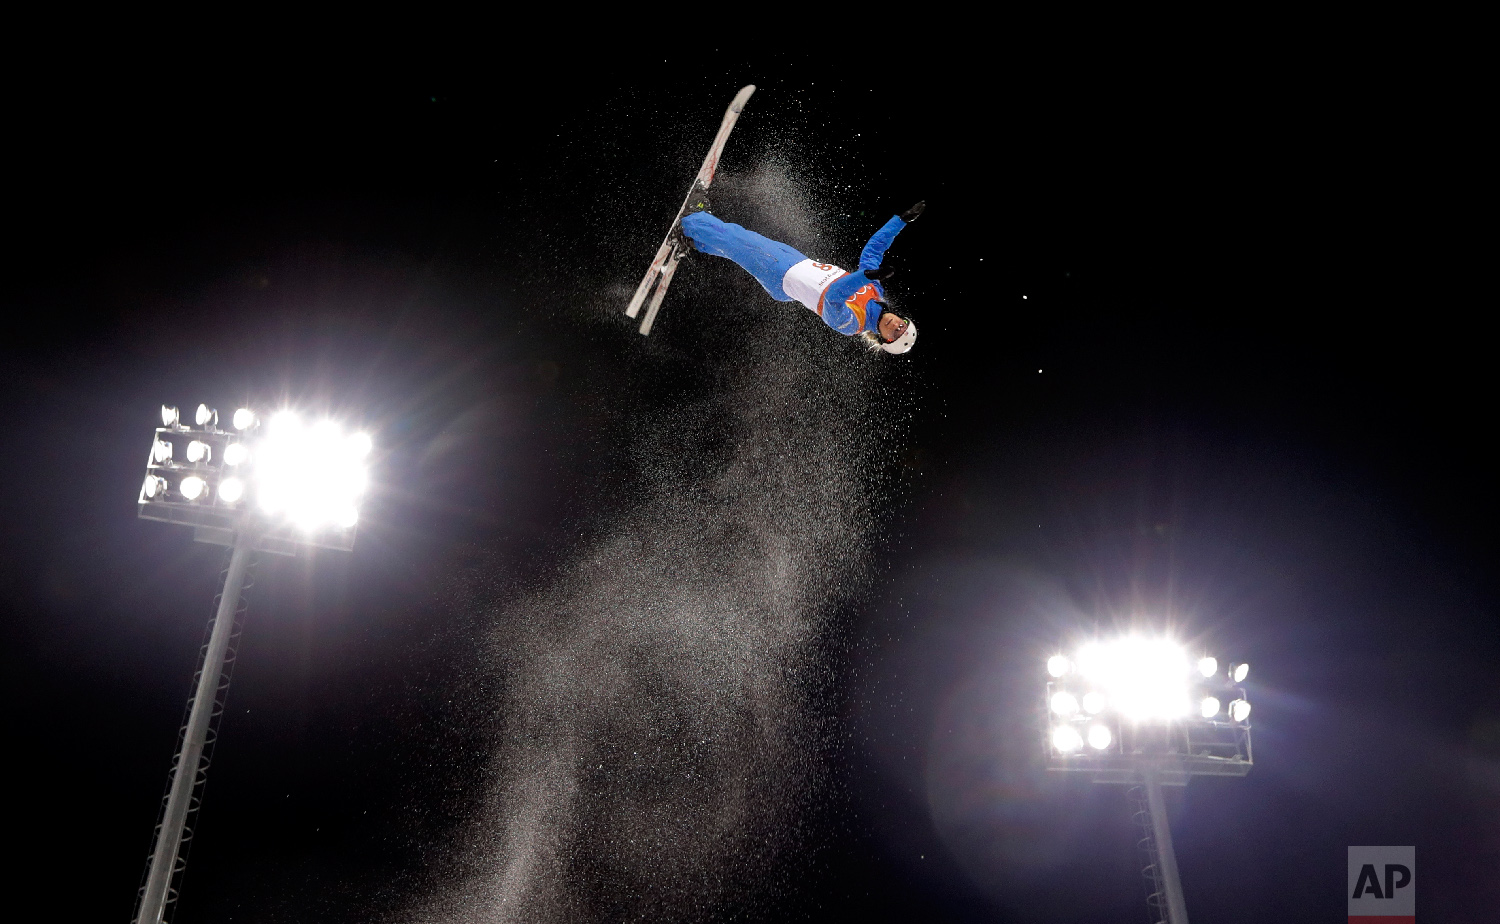 KileyMcKinnon, of the United States, warms up prior to the women's freestyle aerial final at Phoenix Snow Park at the 2018 Winter Olympics in Pyeongchang, South Korea, Friday, Feb. 16, 2018. (AP Photo/Lee Jin-man)